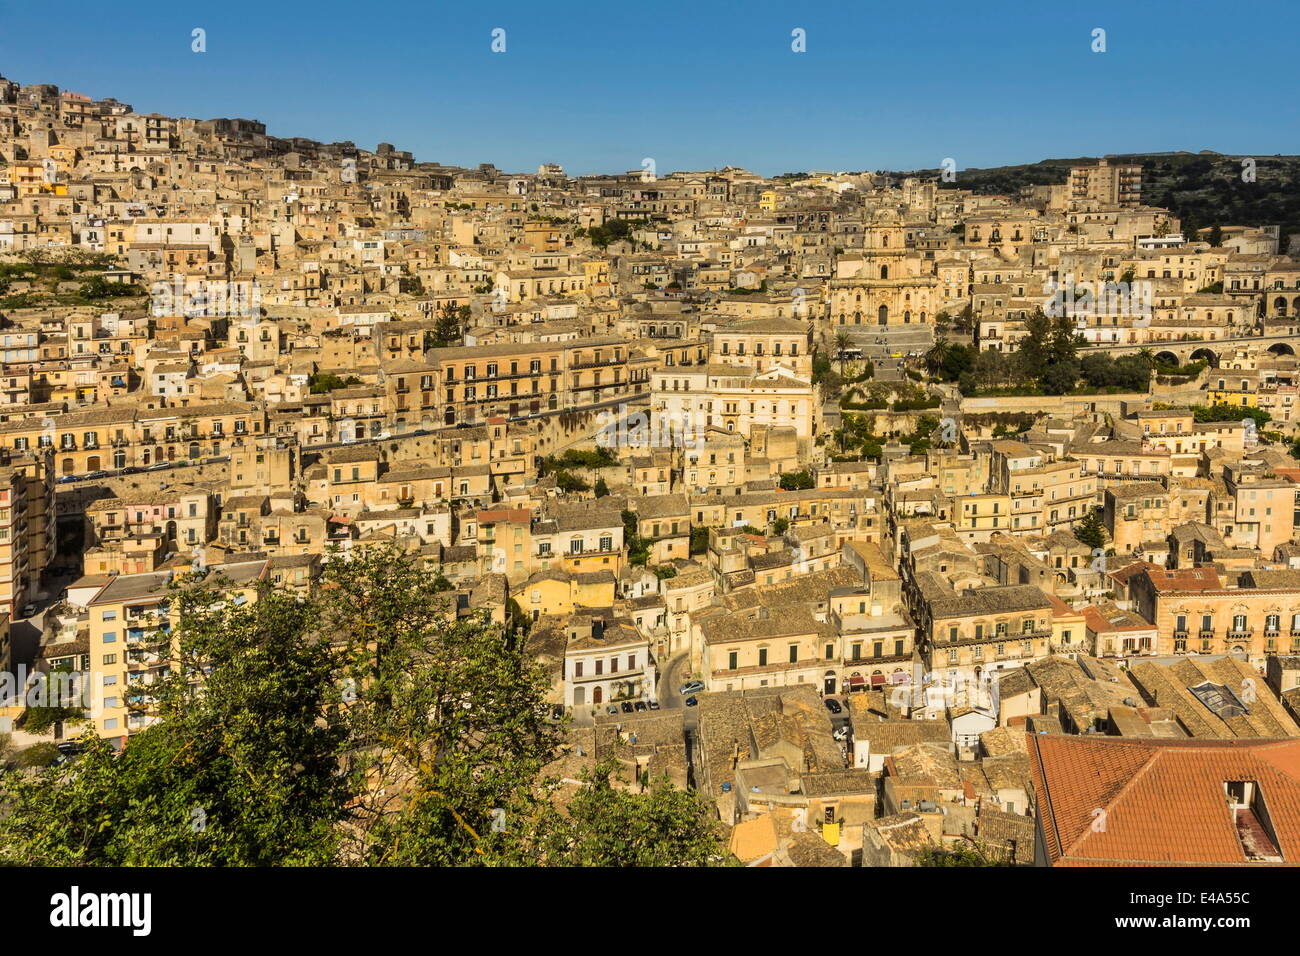 buildings in steep gorge at modica, a town famed for sicilian